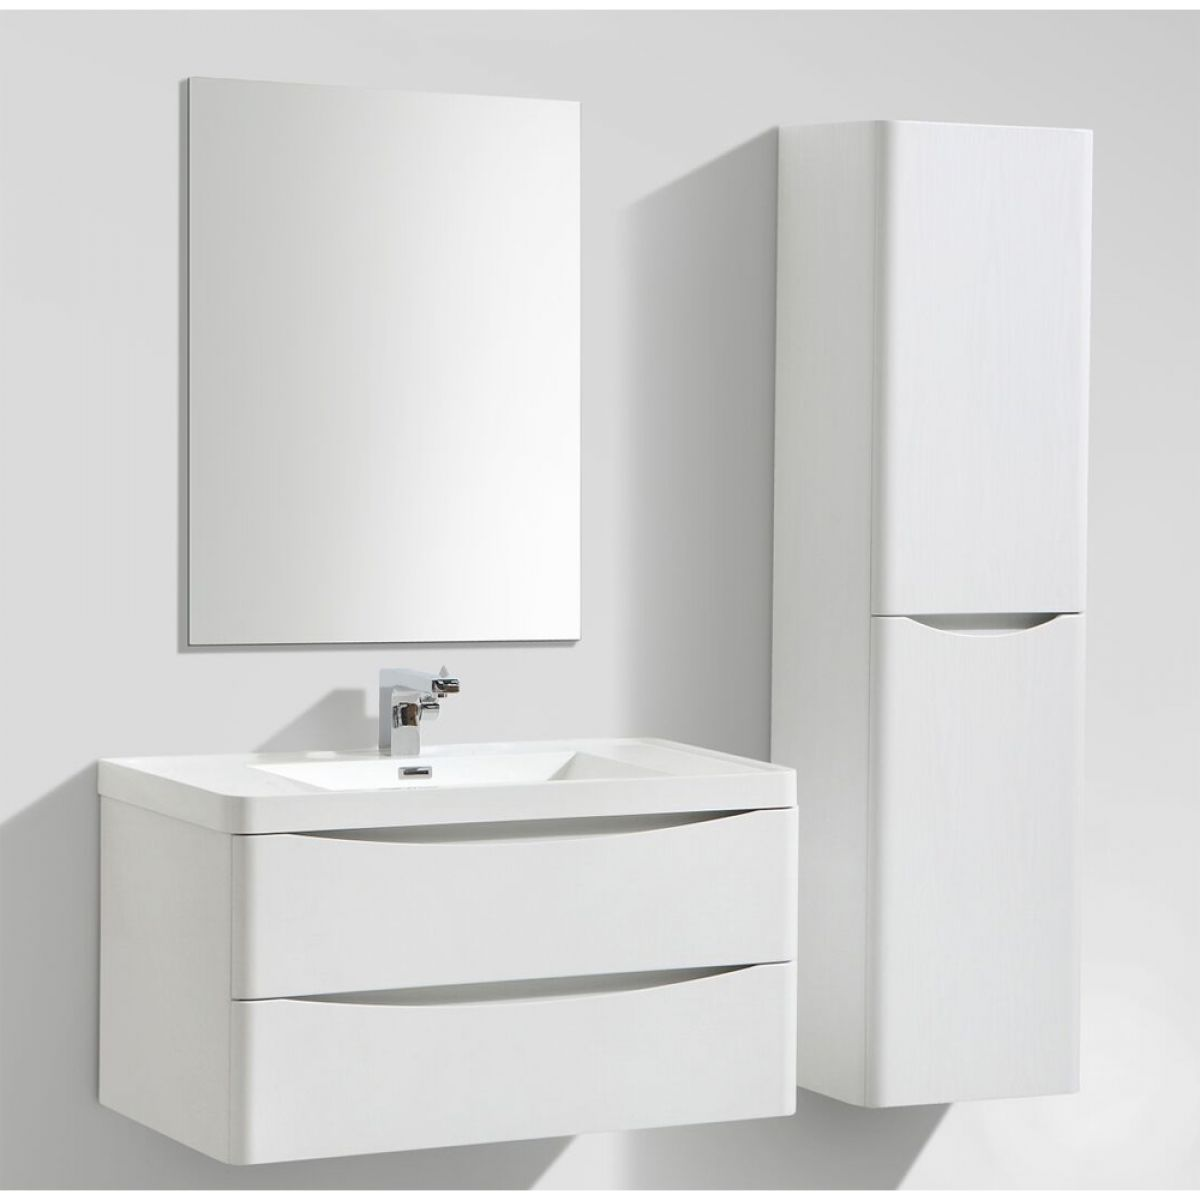 Bali Gloss White Wall Mounted Vanity Unit 900mm